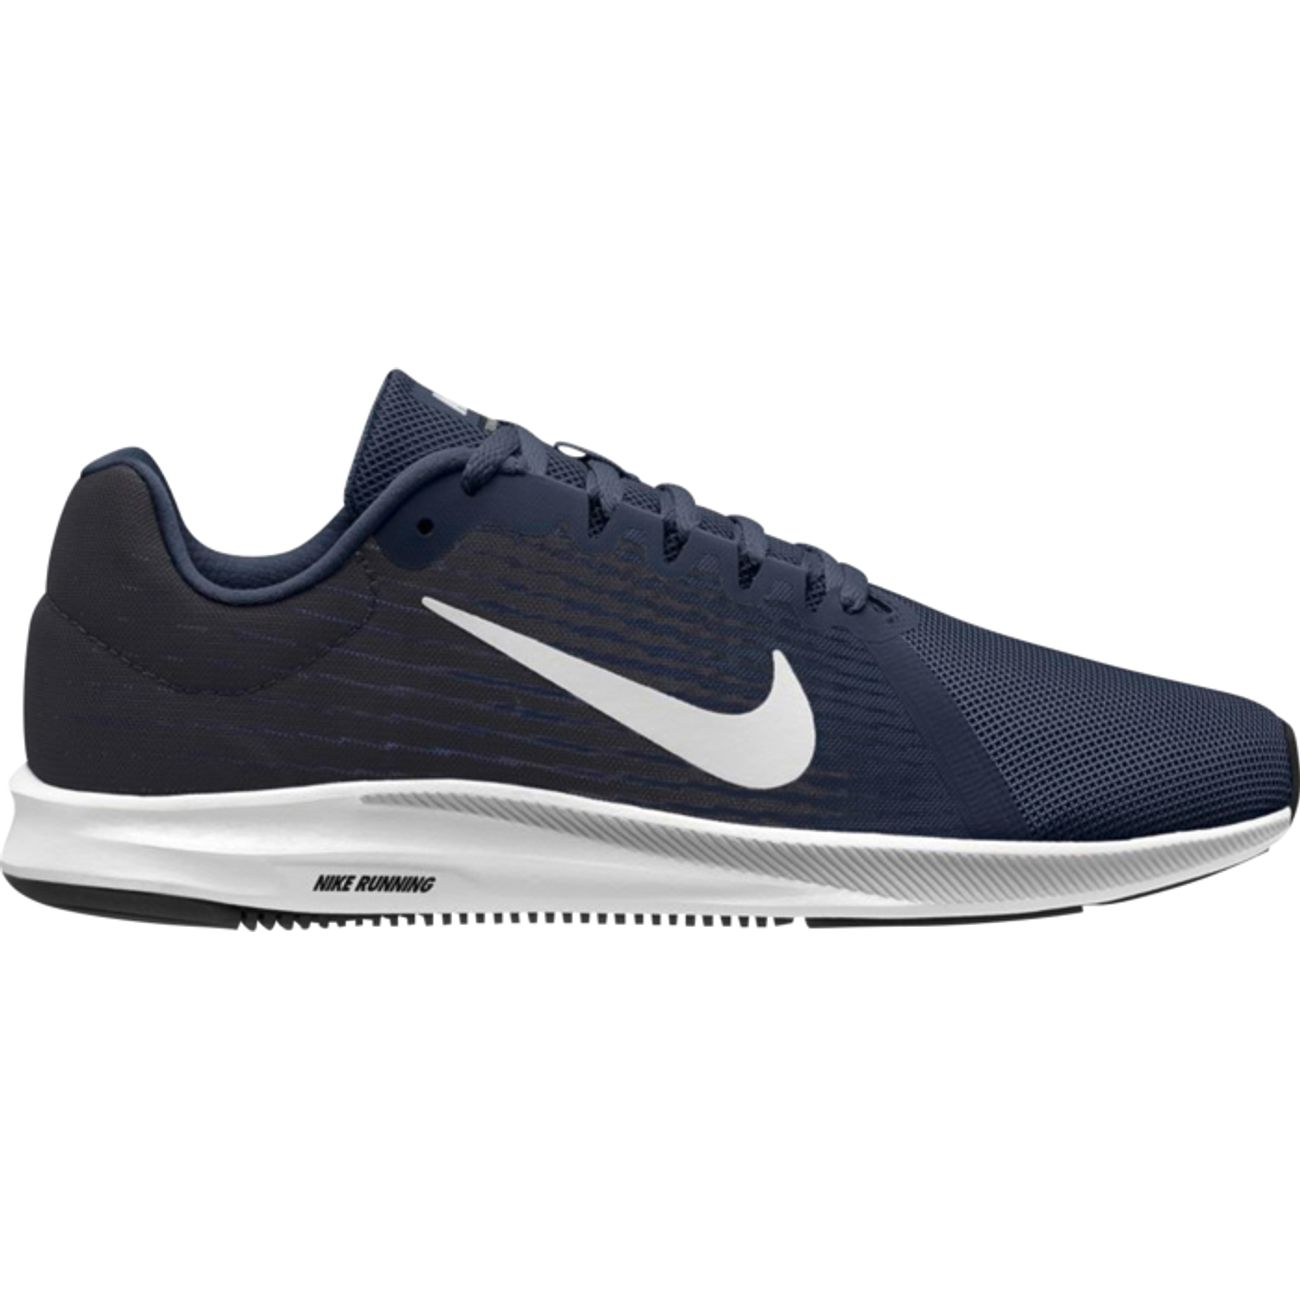 CHAUSSURES BASSES running homme NIKE BTE DOWNSHIFTER, MARINE